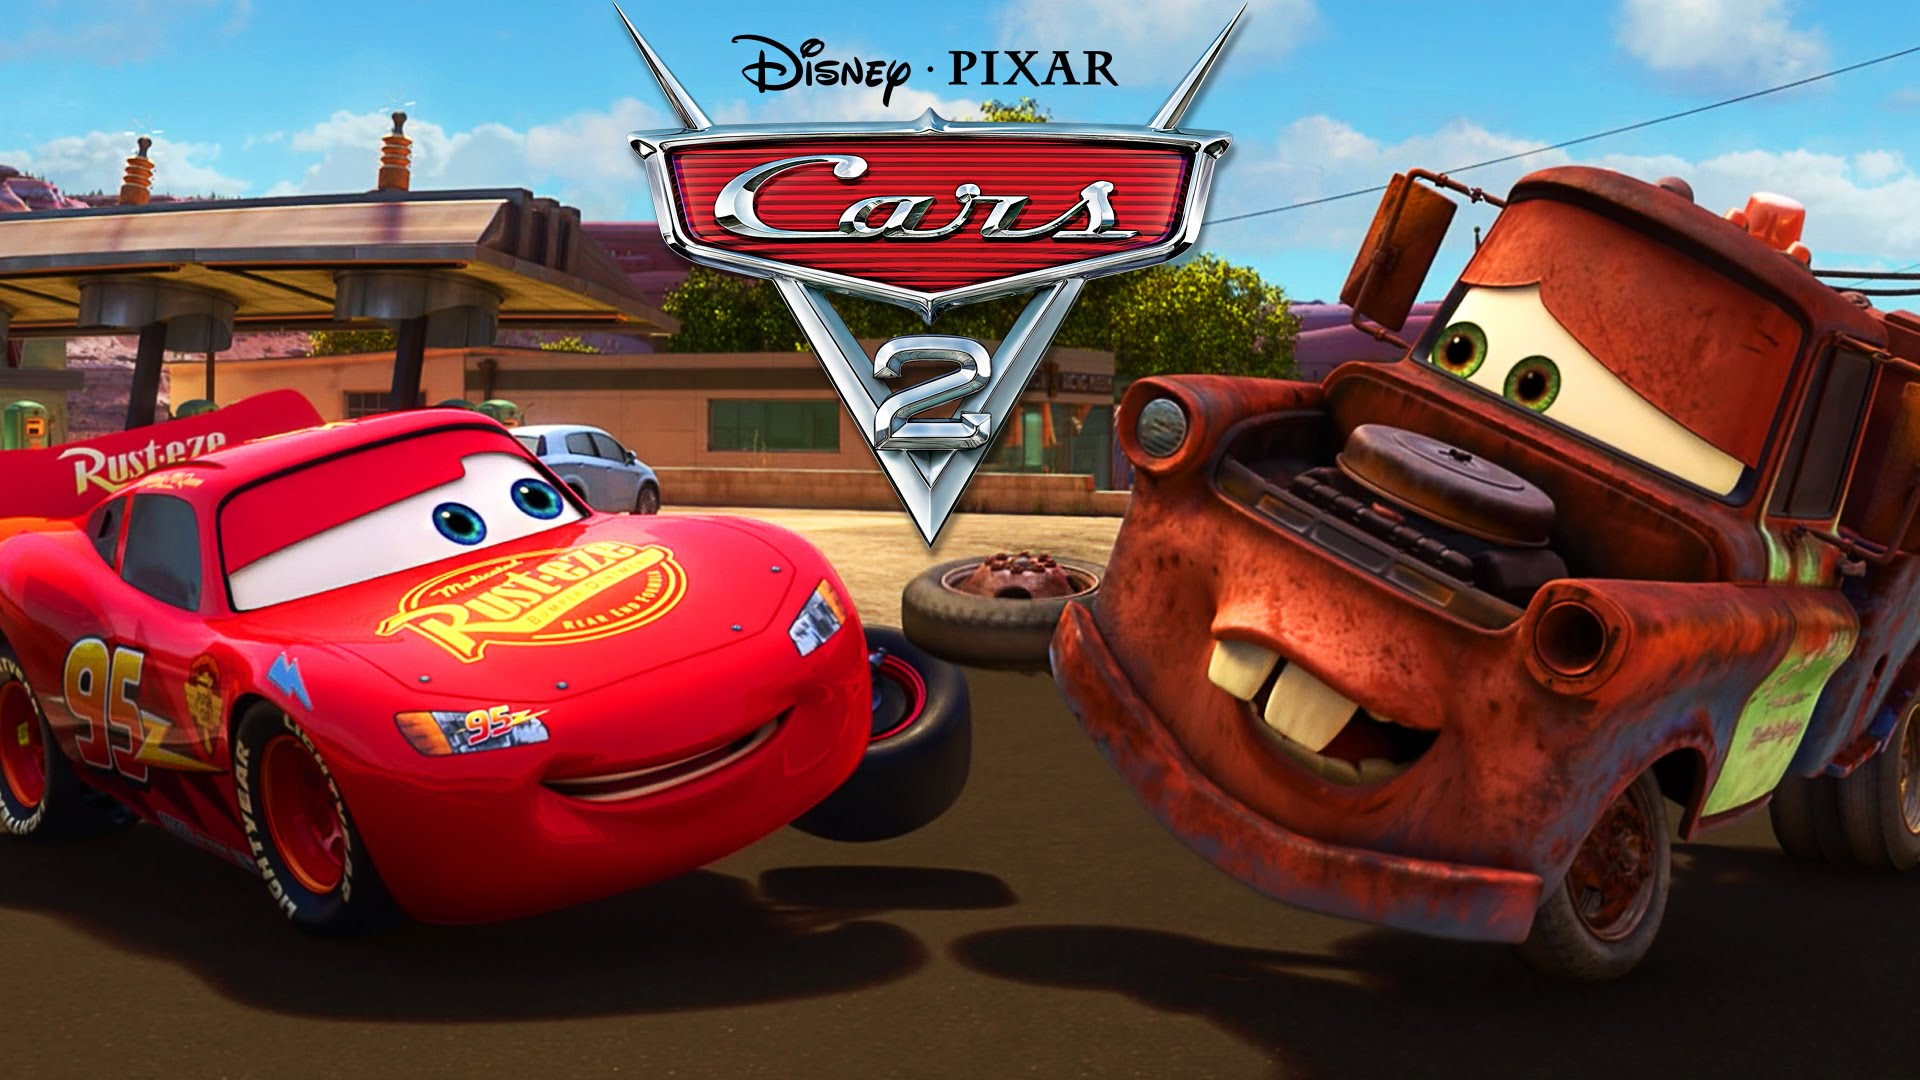 cars mcqueen disney wallpapers lightning movie mater lighting hd quality 1080p background pixar backgrounds desktop tablet collection